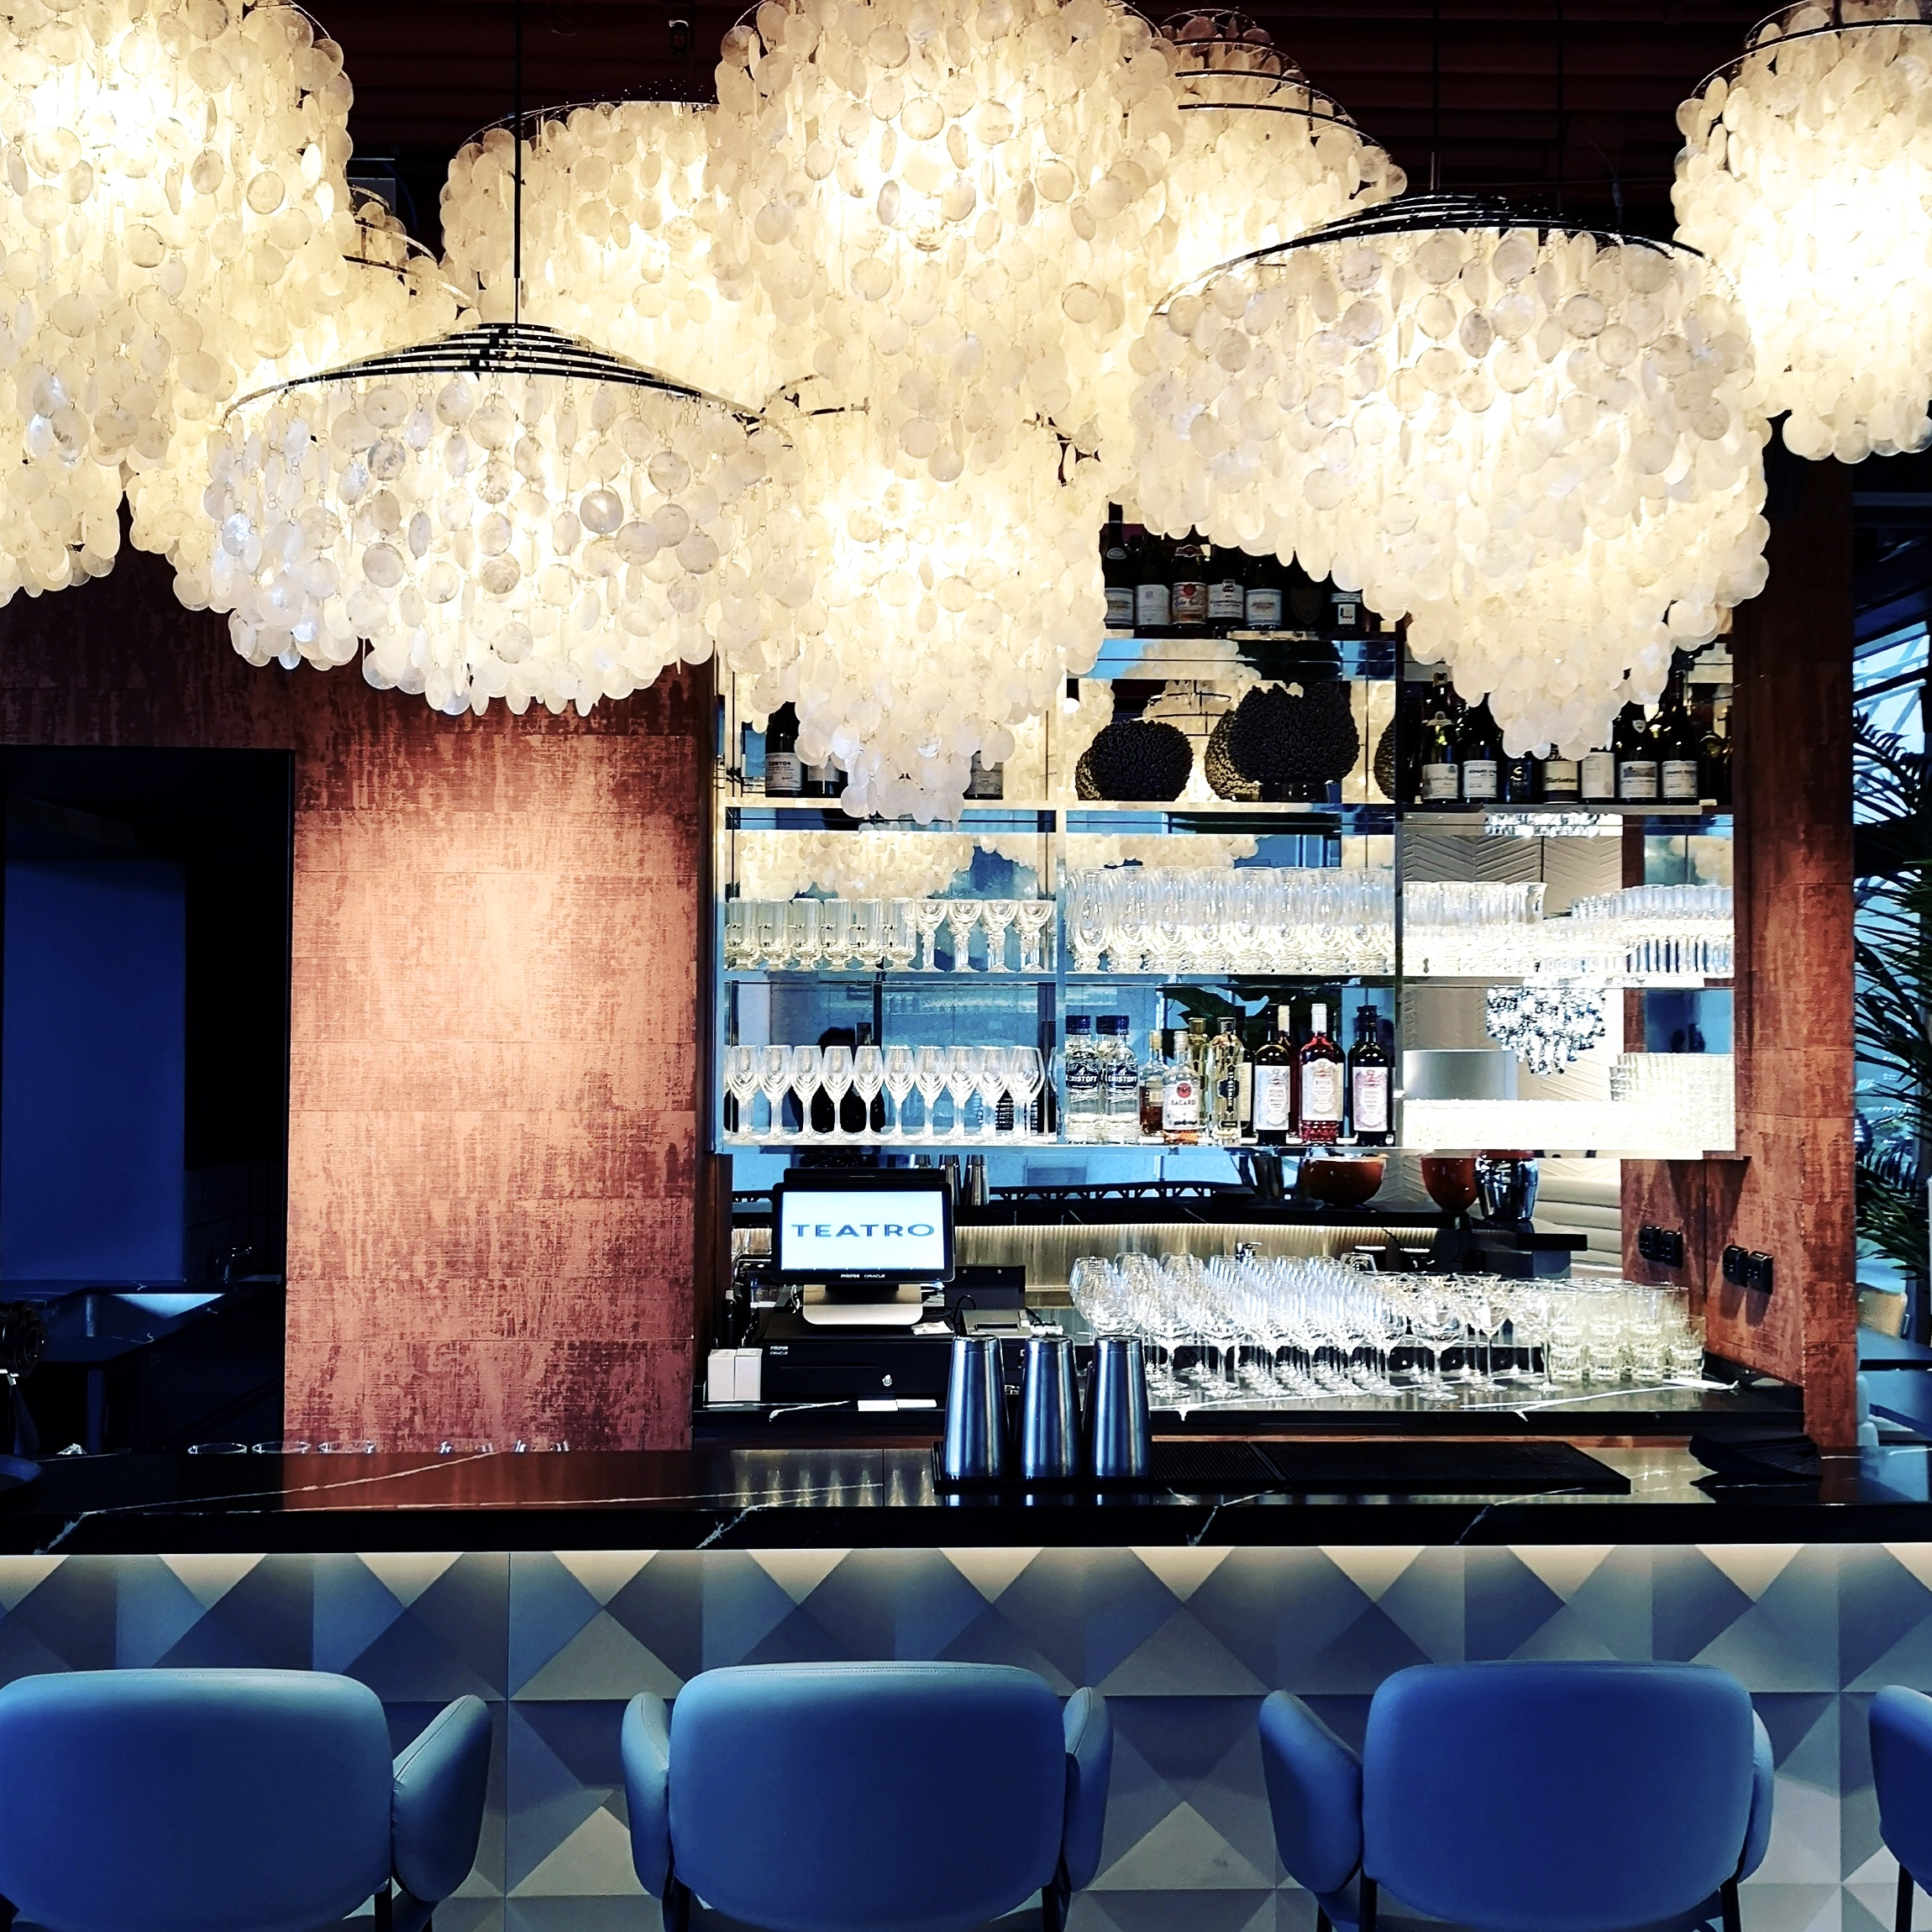 Teatro Terrasse - Glamorous 70' s vibes for a cool downtown brunch spot and late night party pizzas.